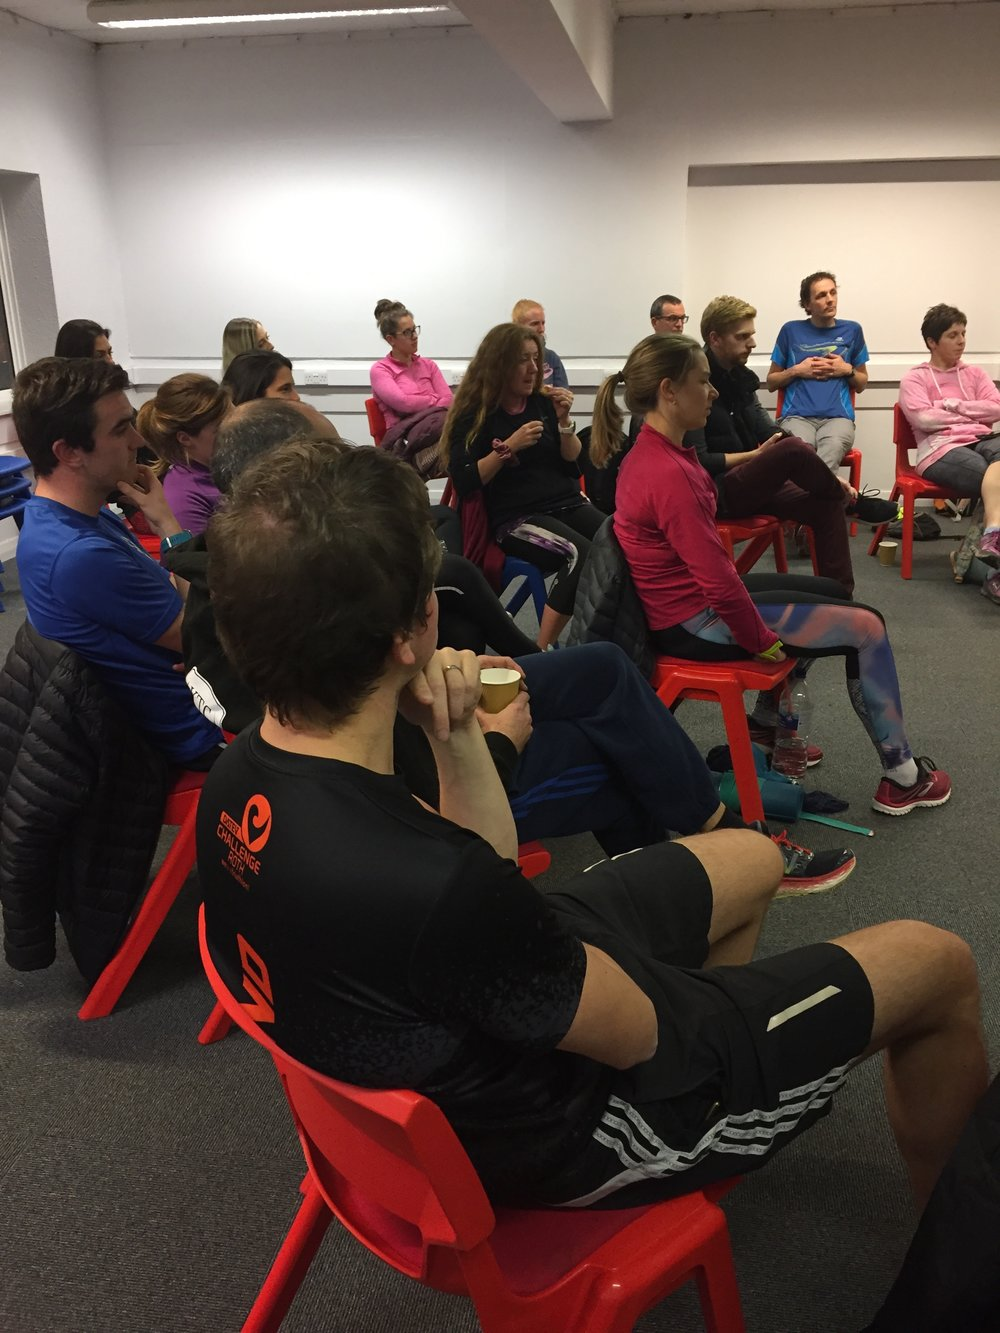 Q and A session with members of Knutsford Triathlon Club